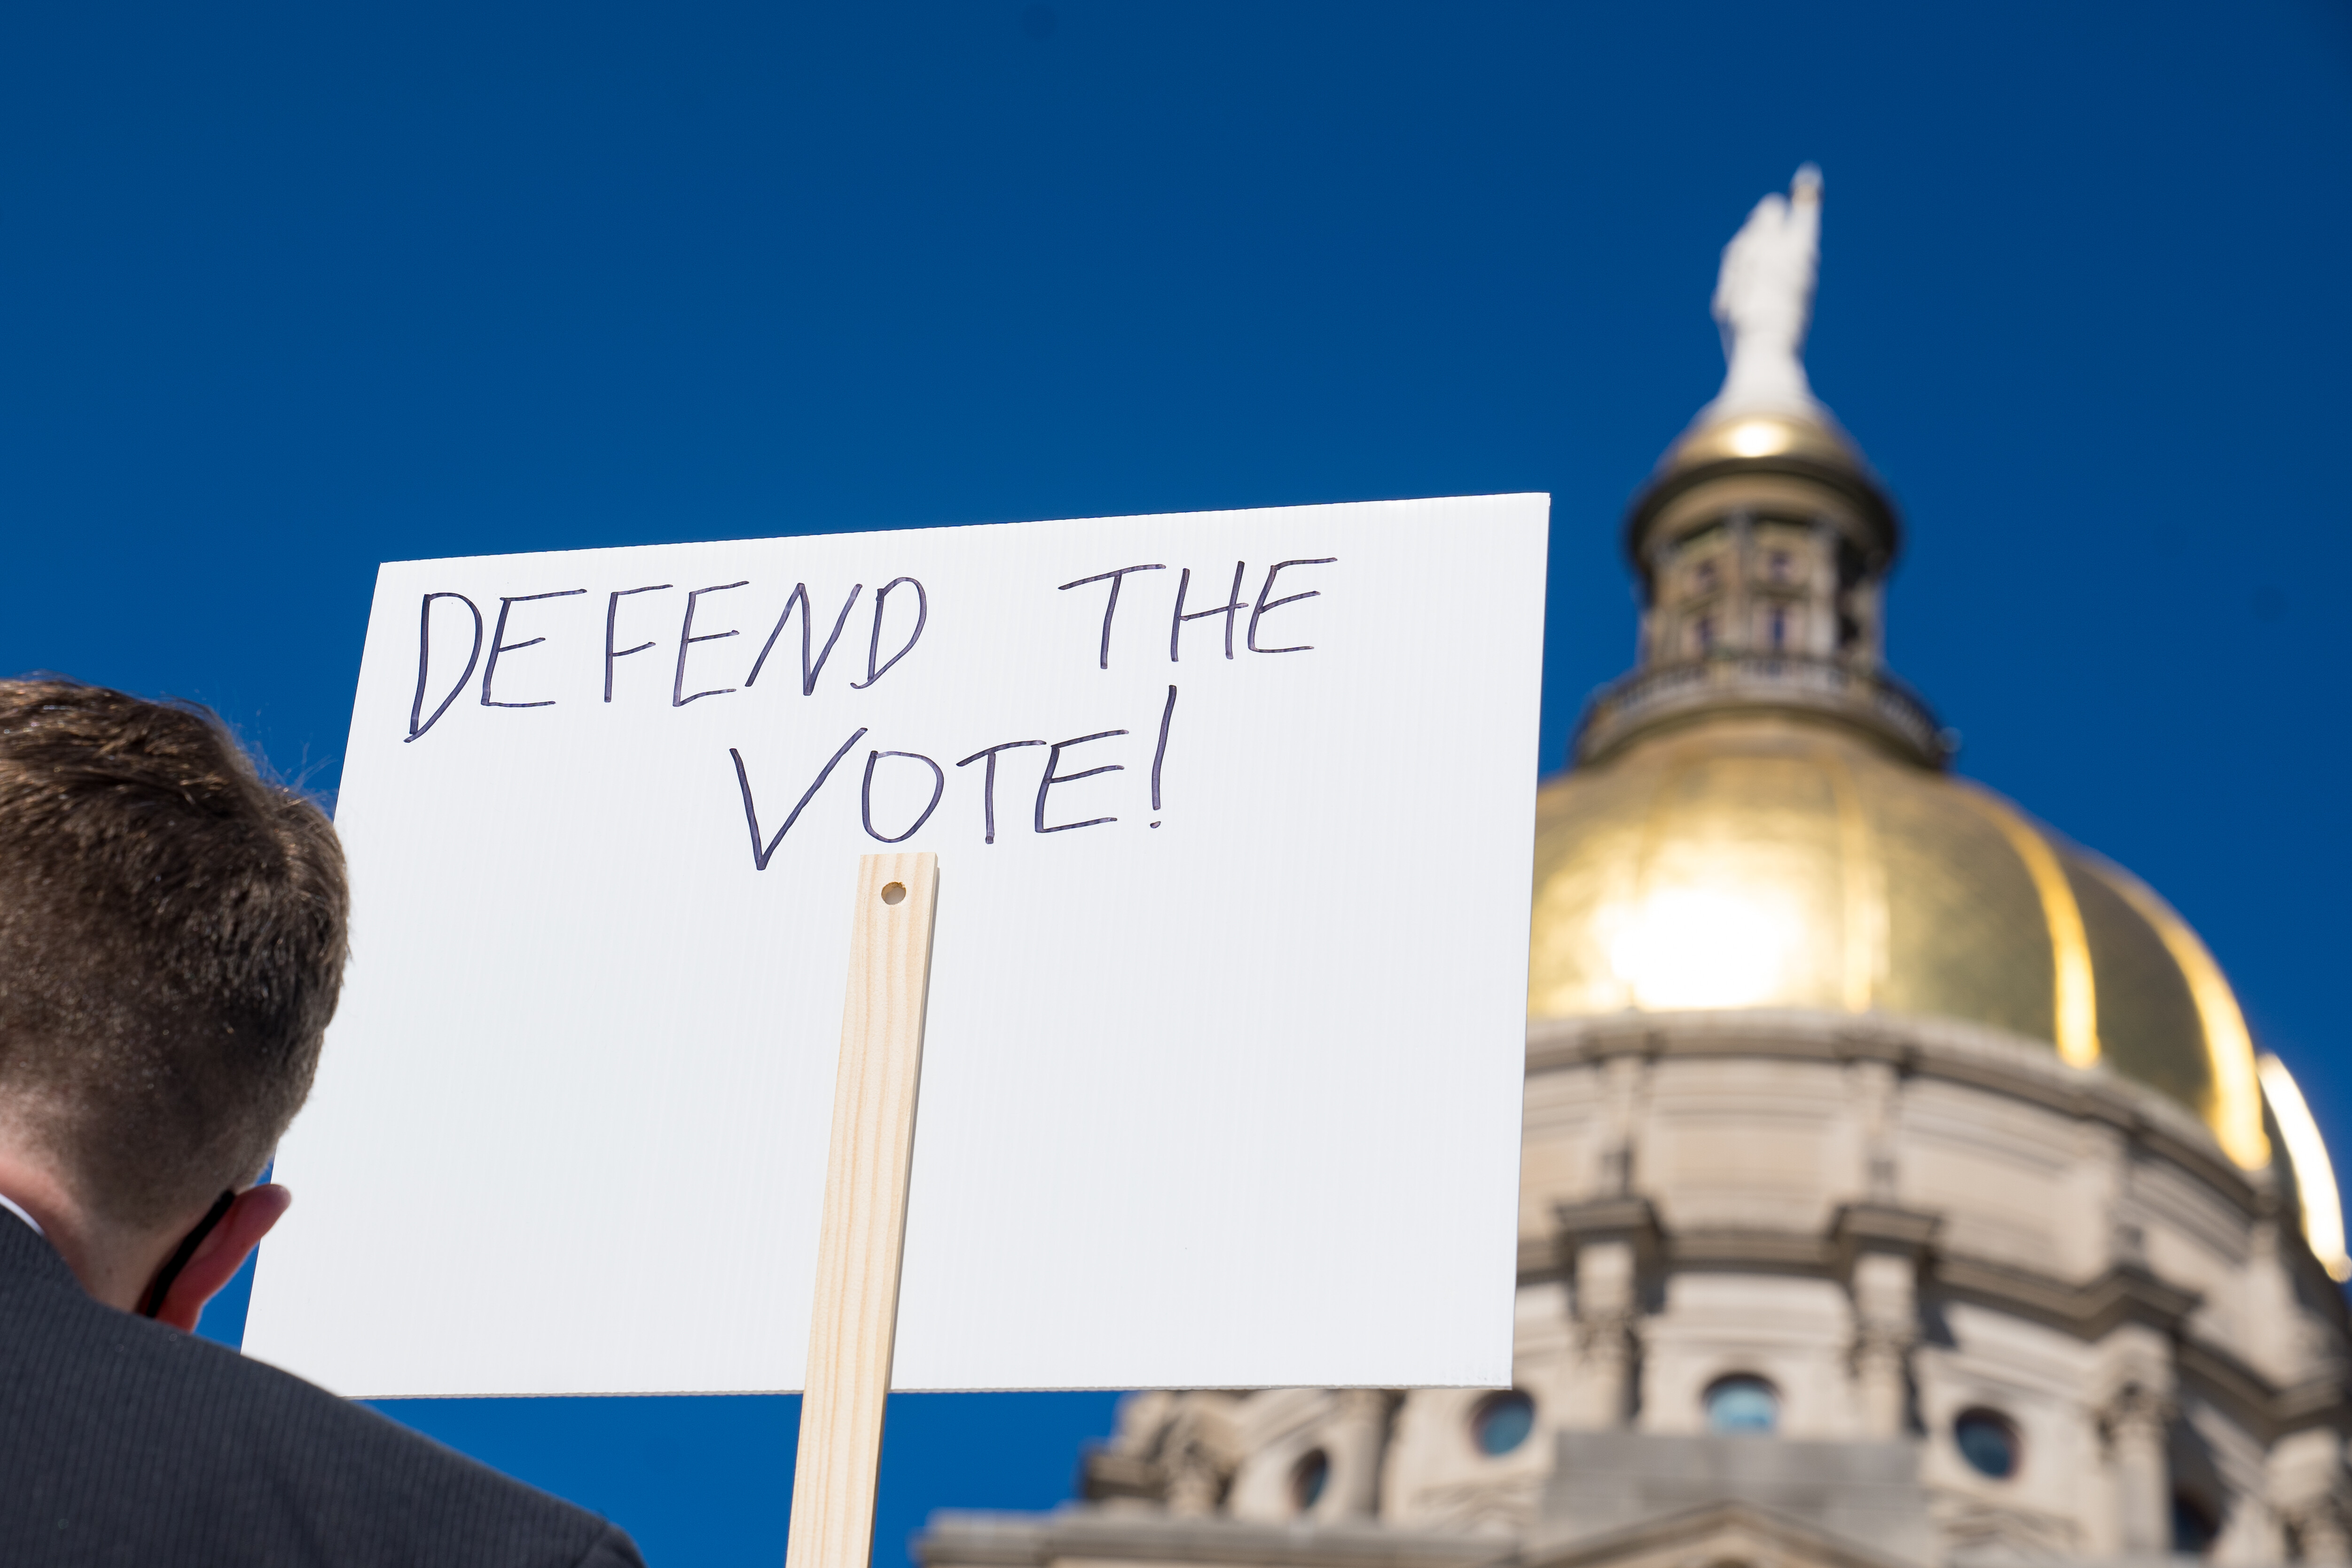 'Cannot wait for Washington:' How voting rights activists are navigating new restrictions ahead of November elections